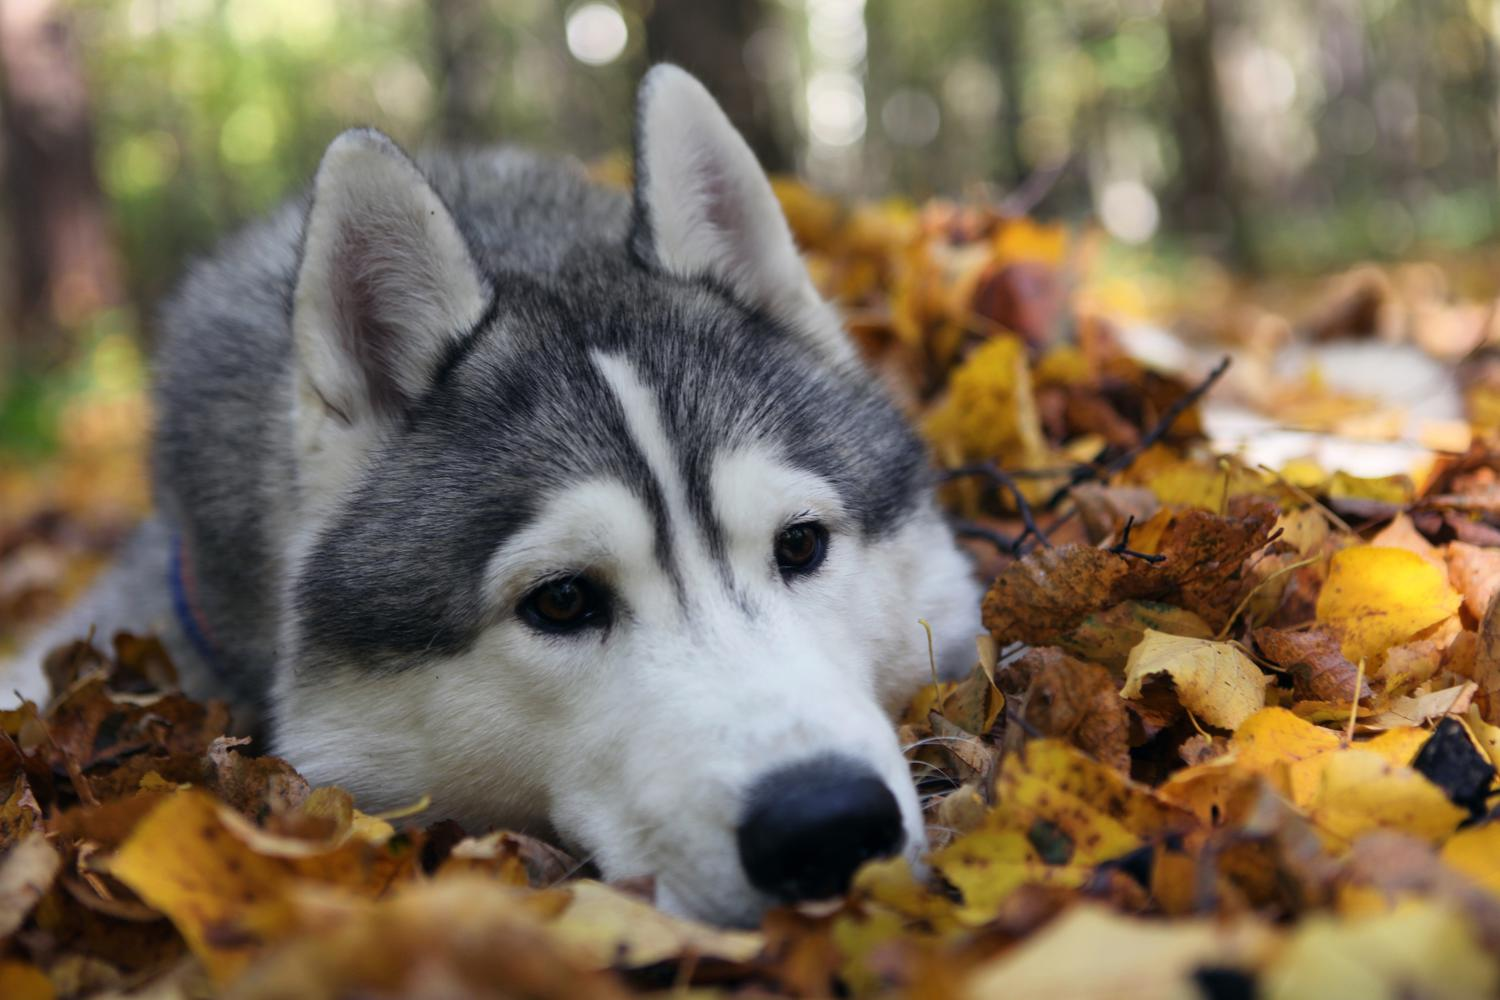 animals_dogs_husky_fallen_leaves_4080x2720_wallpaper_Wallpaper_4080x2720_www_wall321_com_